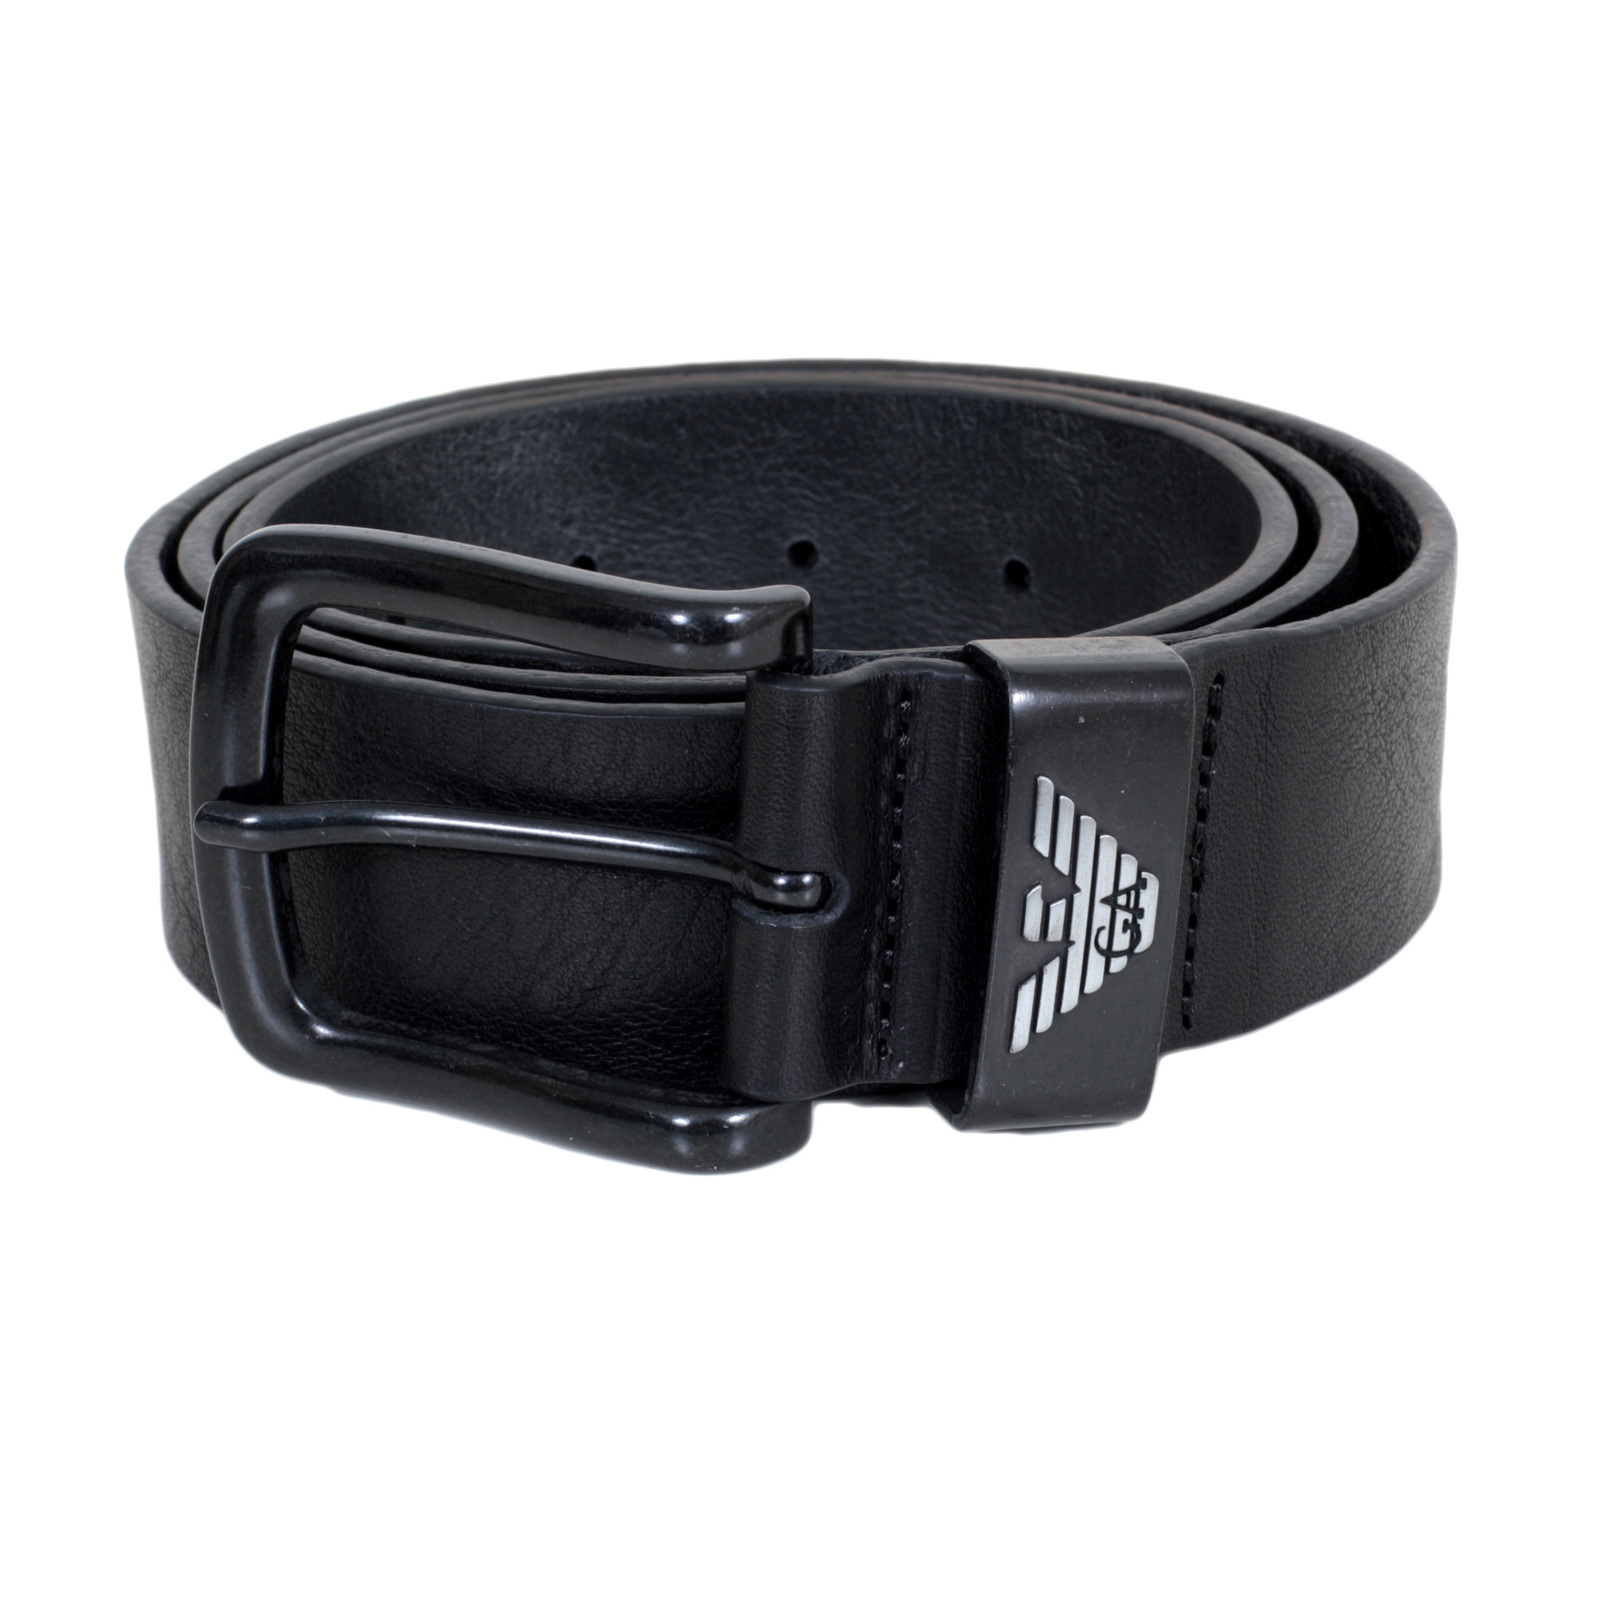 Find great deals on eBay for mens black belt. Shop with confidence.